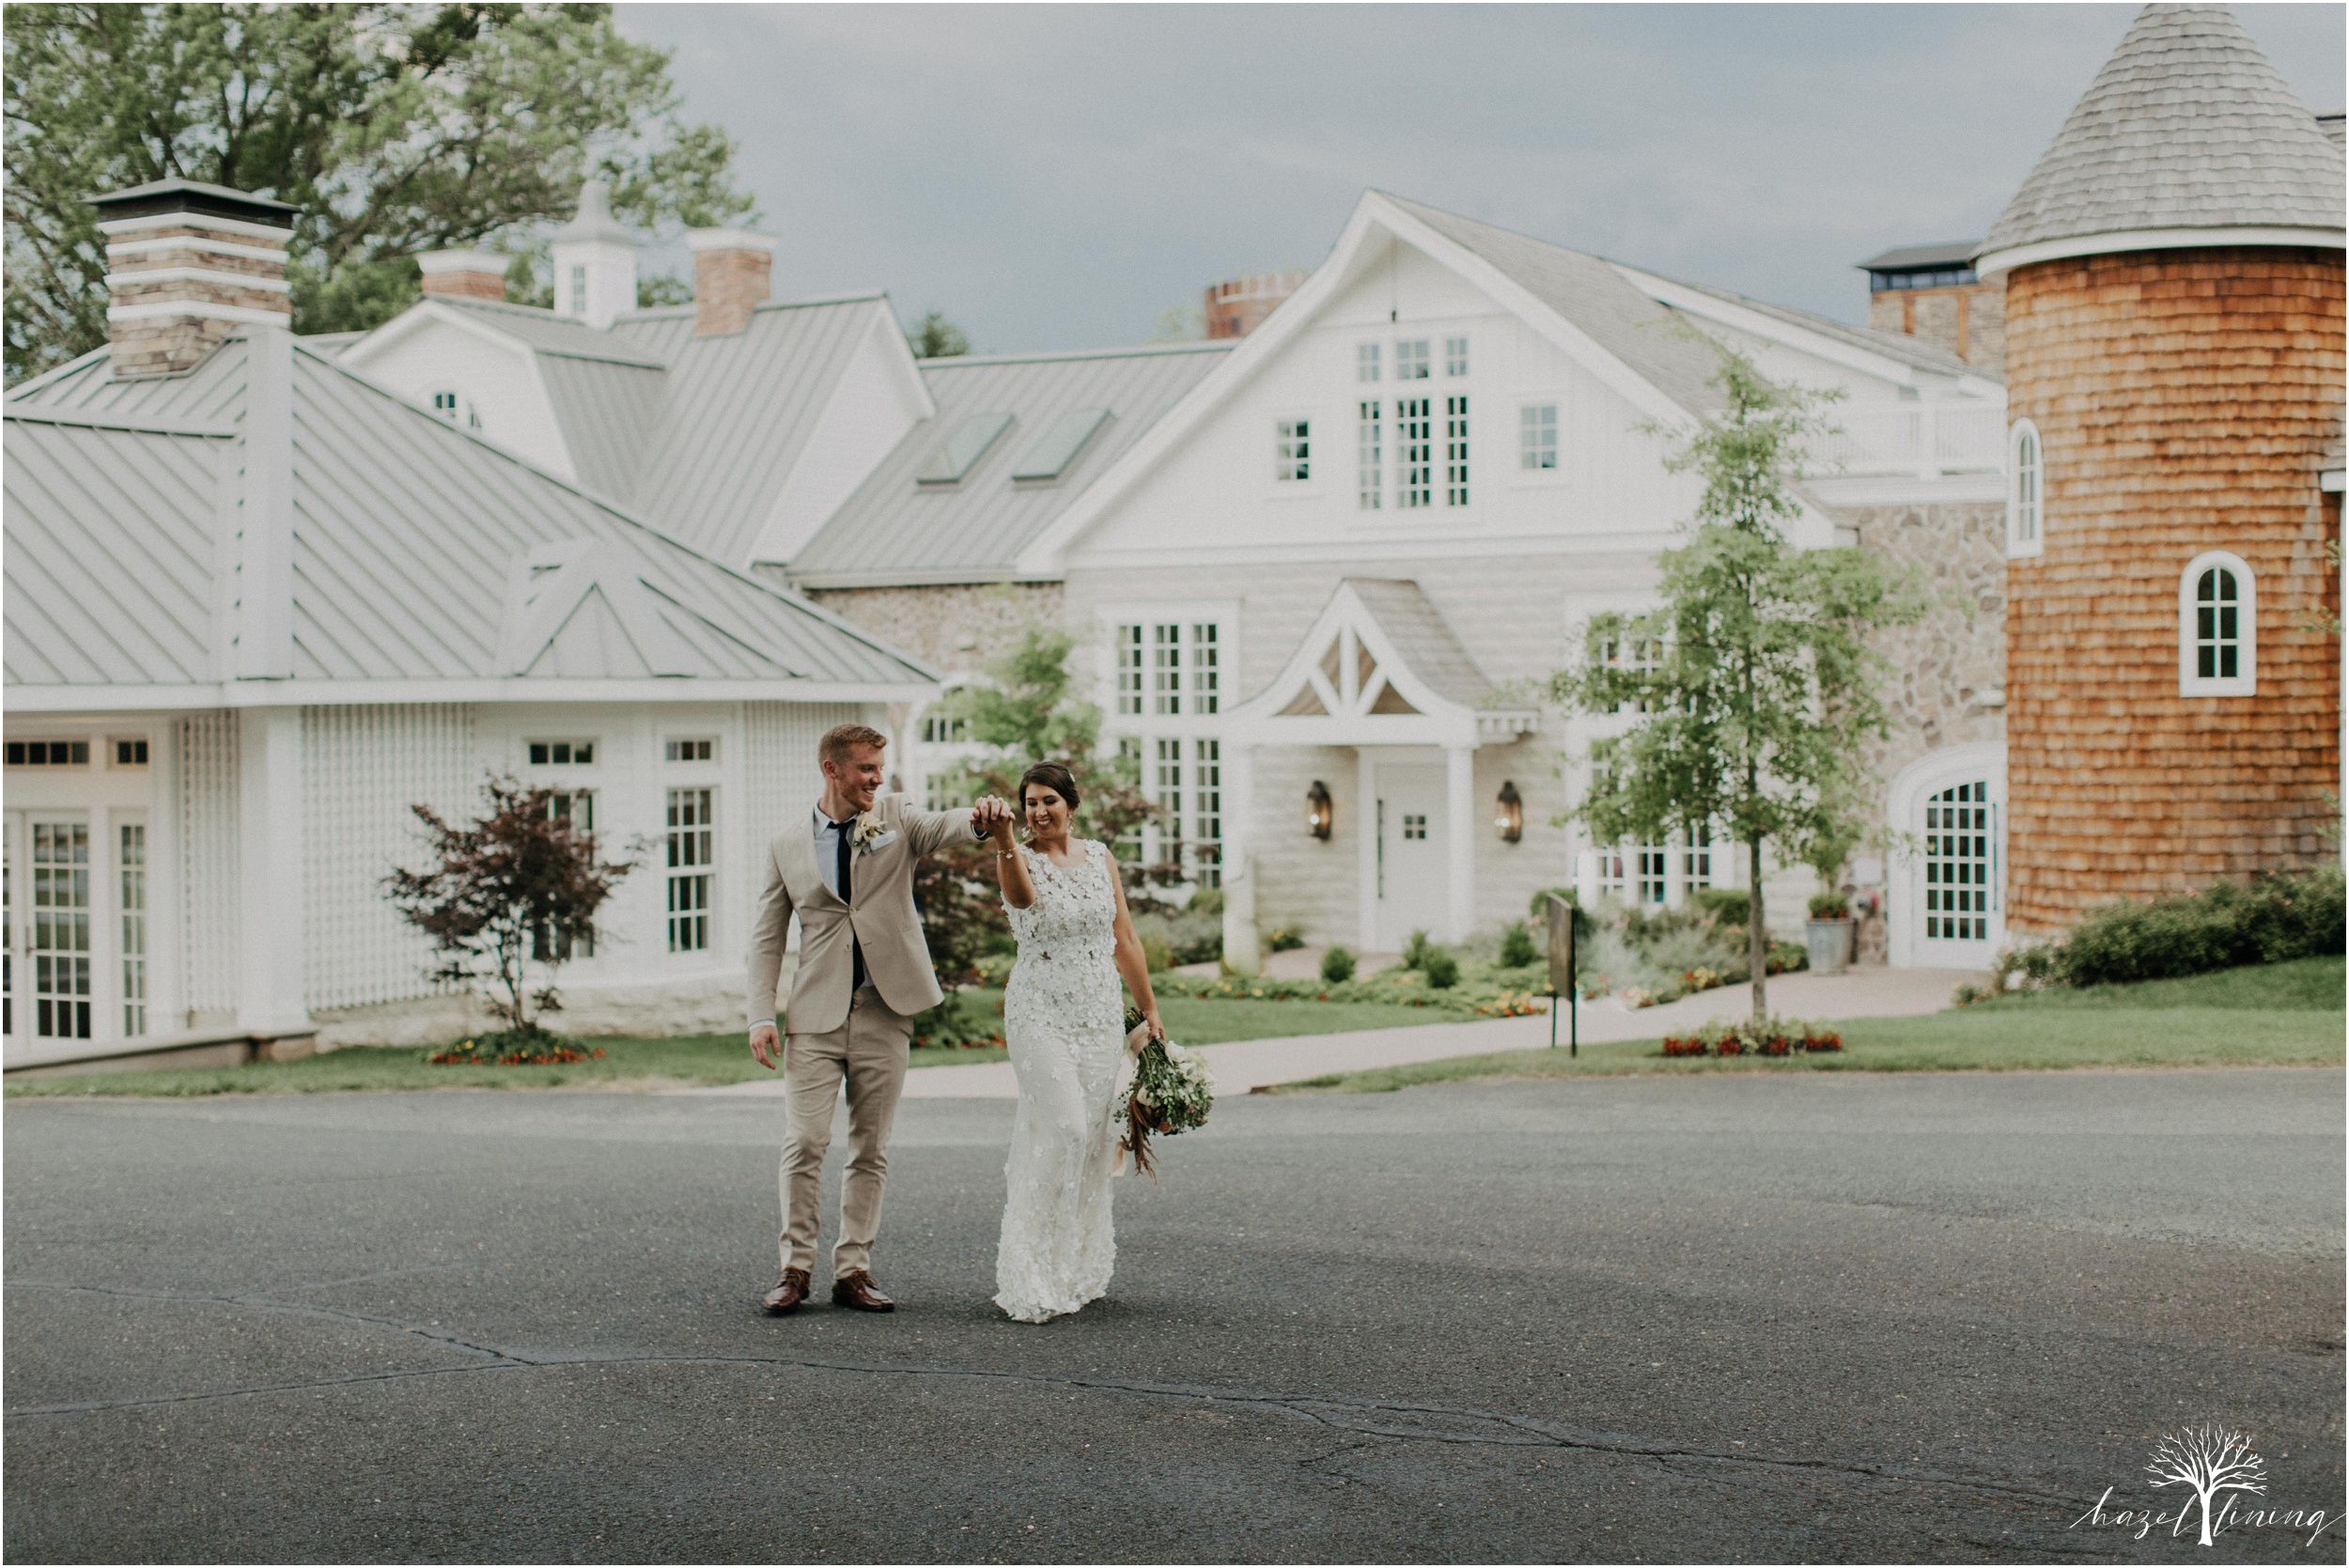 carl-chloe-the-ryland-inn-whitehouse-station-new-jersey-styled-squad-hazel-lining-photography-destination-elopement-wedding-engagement-photography_0024.jpg